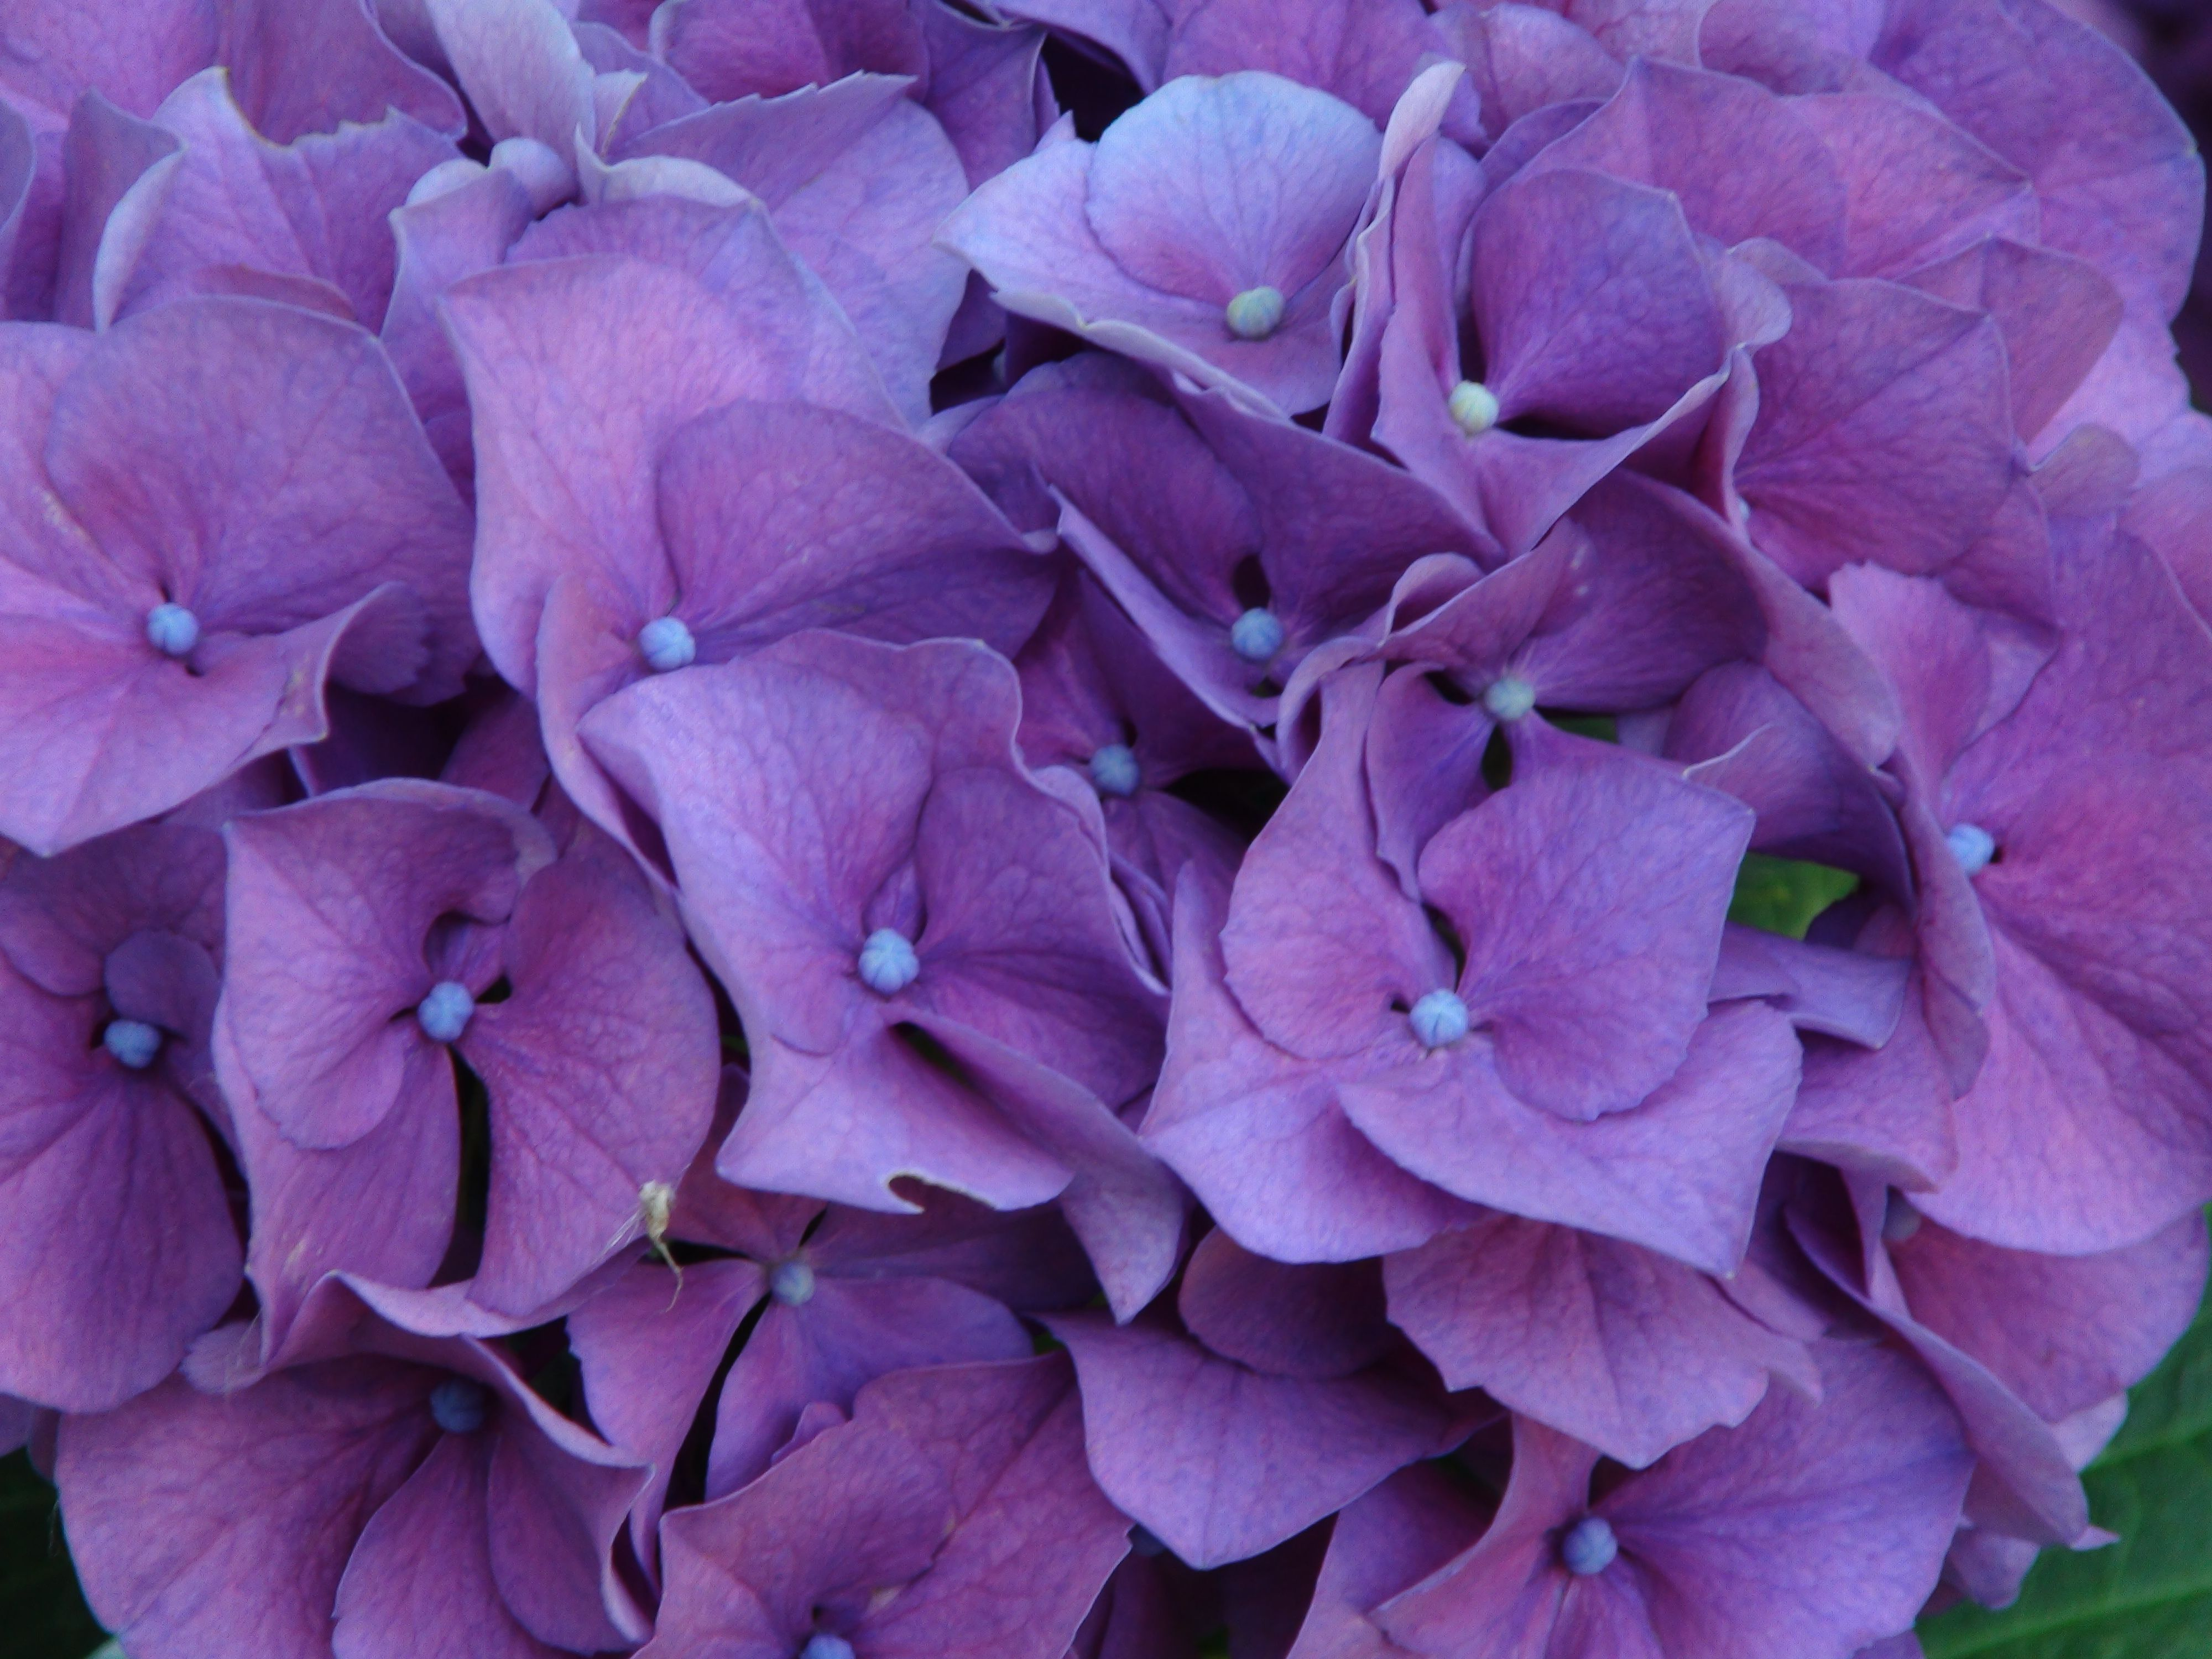 Our hydrangeas   2015 artfromperry